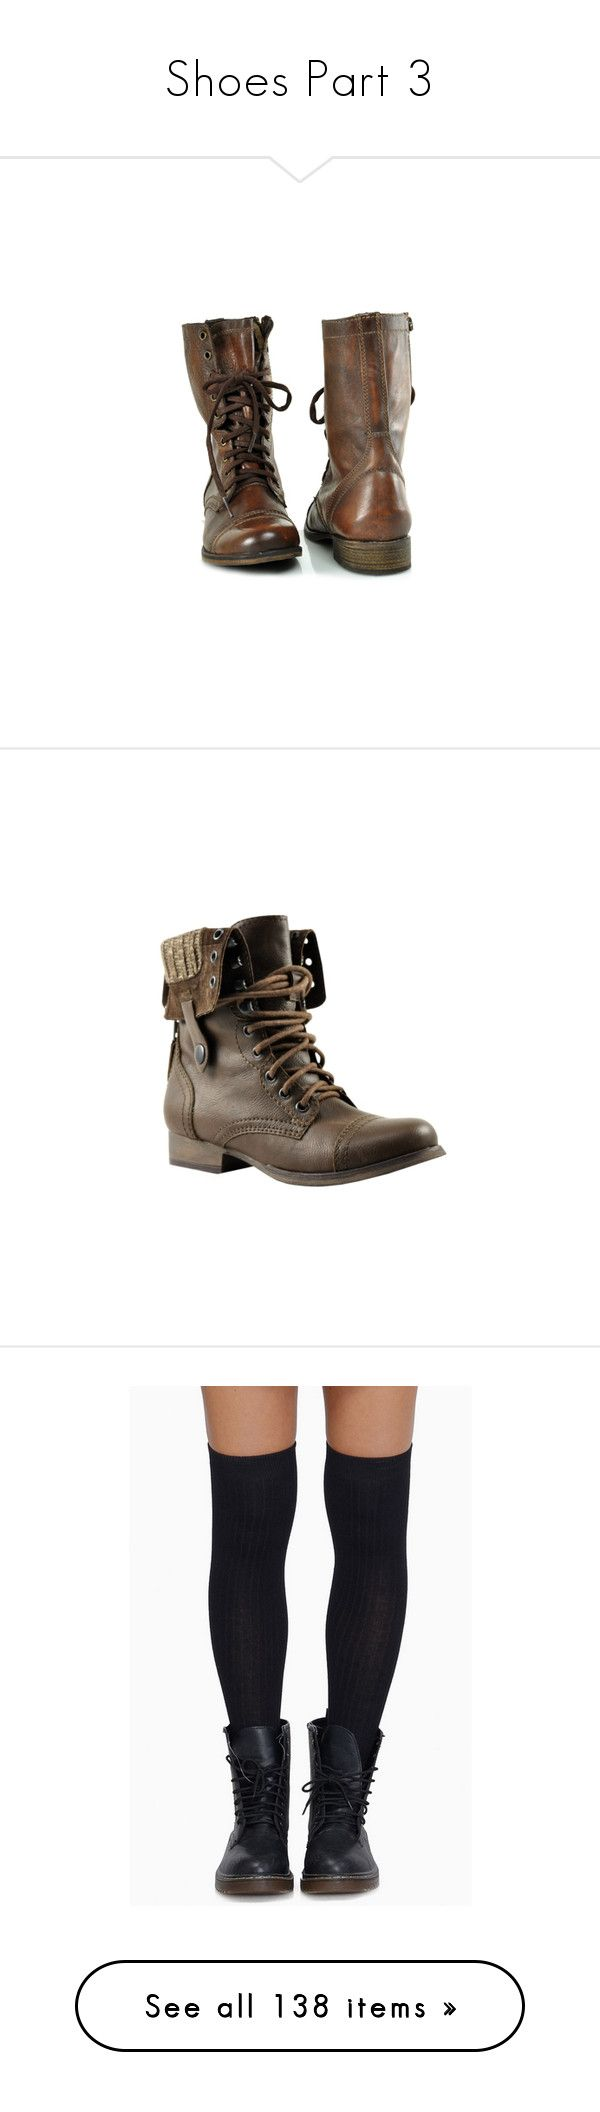 """Shoes Part 3"" by drskullz on Polyvore featuring shoes, boots, botas, zapatos, steve madden shoes, leather army boots, genuine leather shoes, cognac leather boots, cognac combat boots and ankle booties"